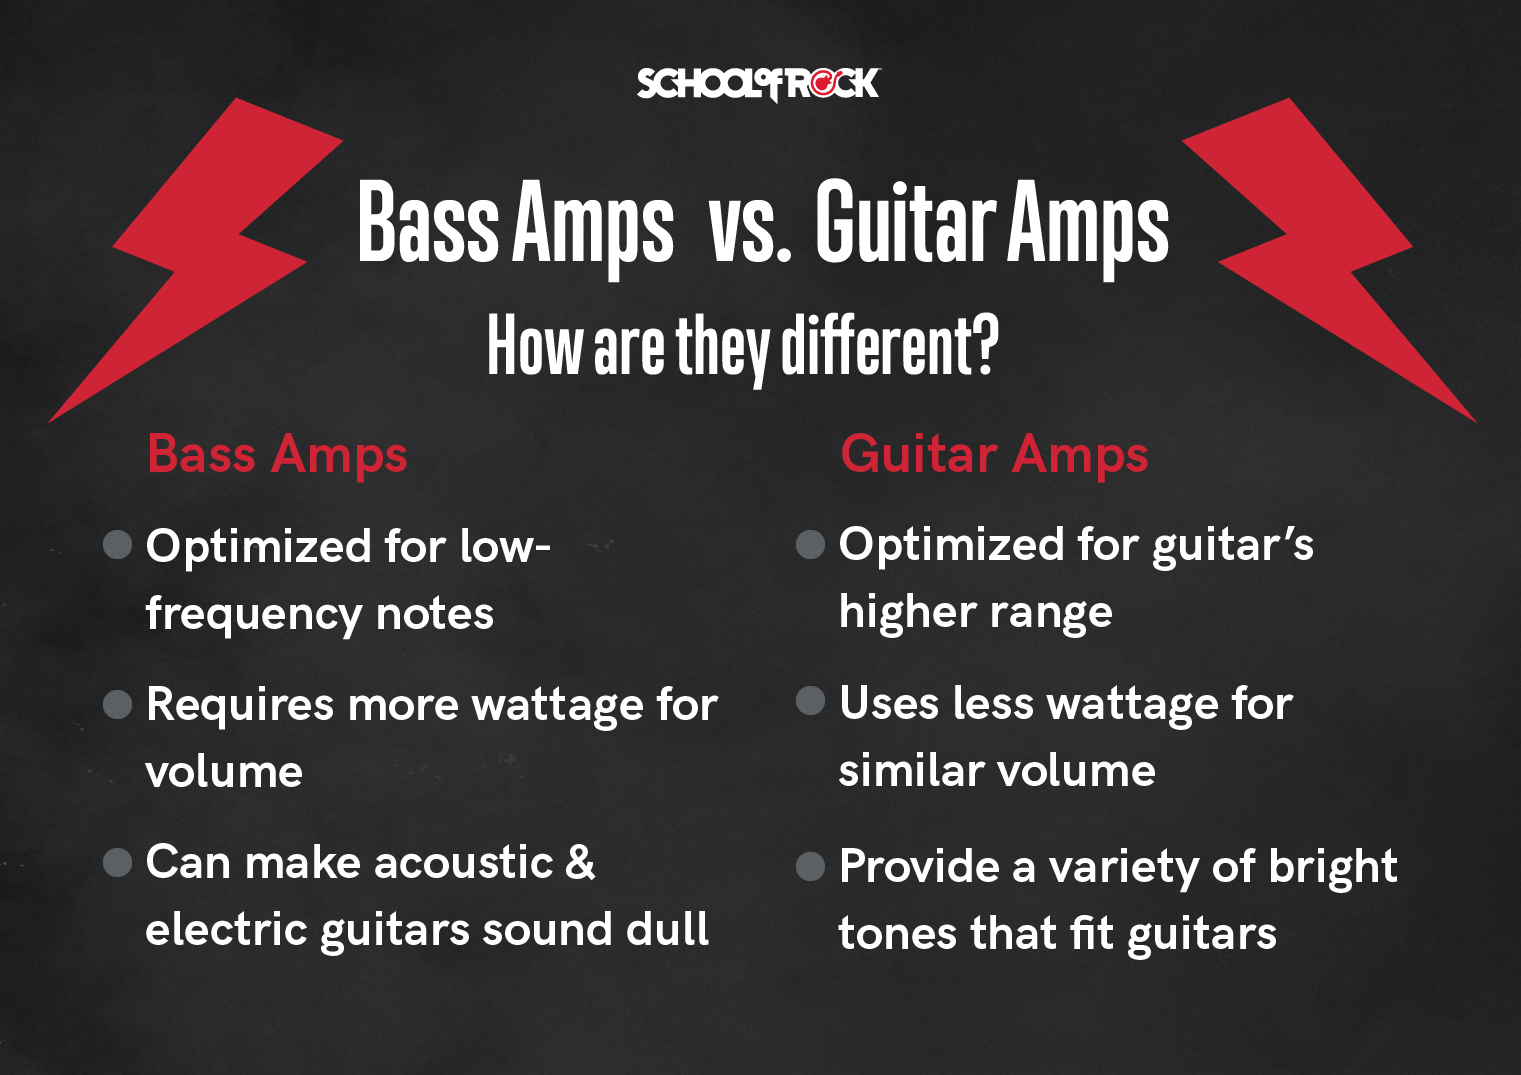 bass amps vs guitar amps